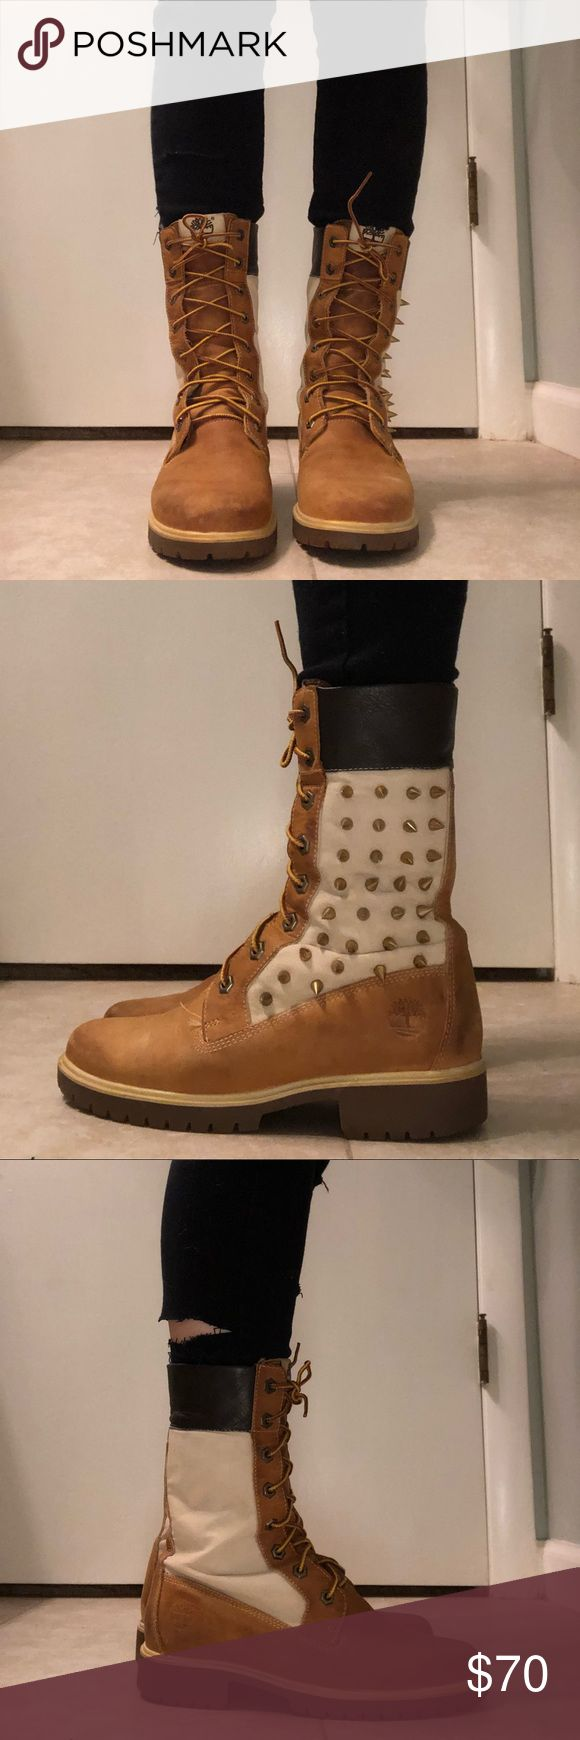 """Woman's custom timberlands !authentic! Custom timberlands, 6"""" boot with studding on one of the boots. I got them studded by a friend who customizes shoes. Stained, but can be cleaned... I just don't own suede cleaner.  There is some wear-and-tear but it is minimal and not obvious. (This is reflected in the price.) asking 70 or best offer. Timberland Shoes Lace Up Boots"""